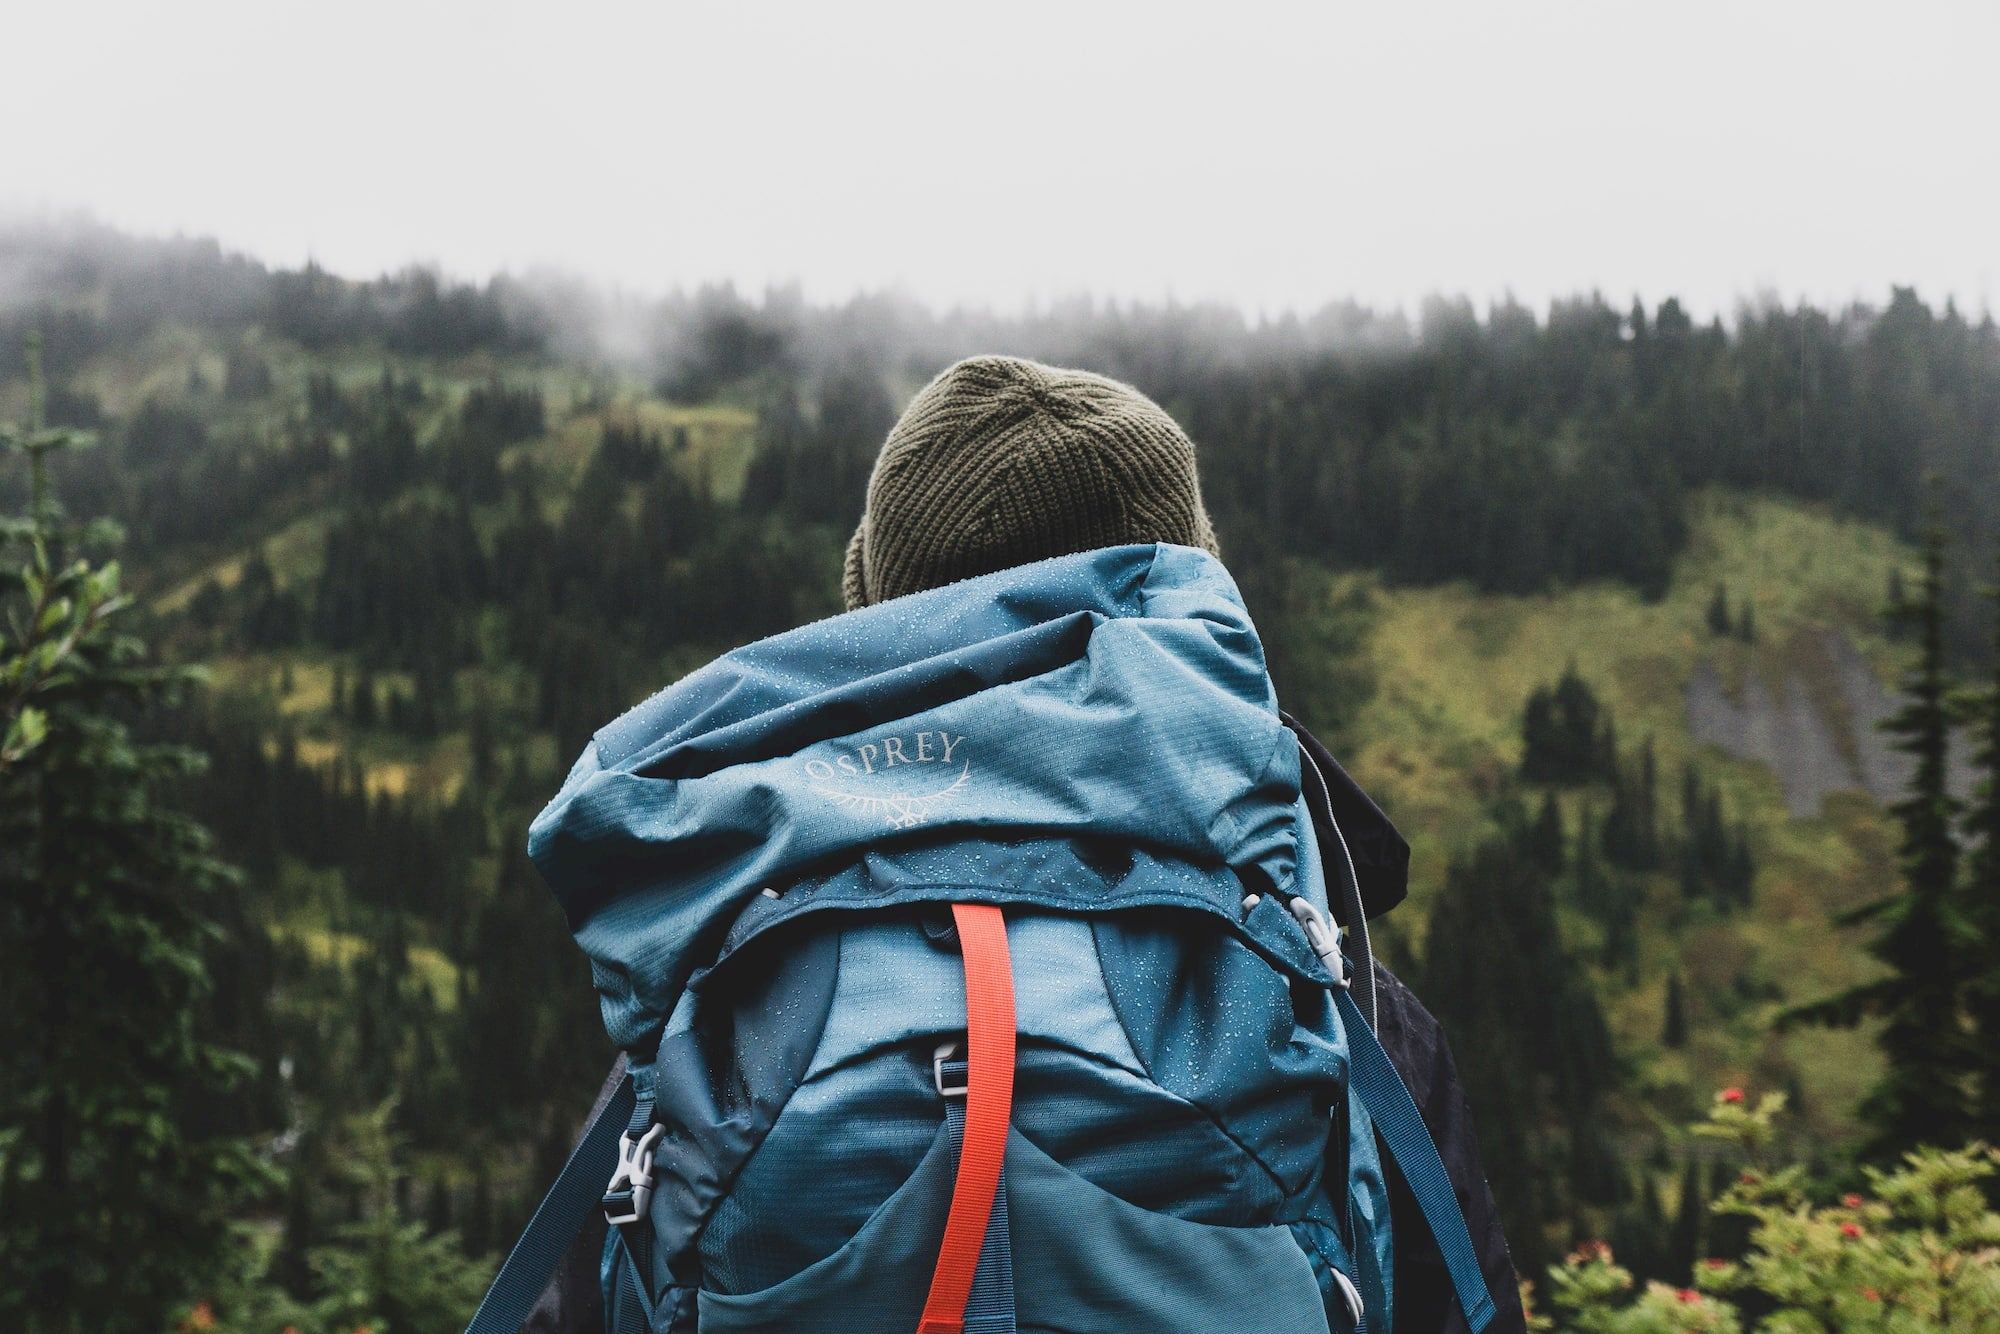 Woman with blue backpack overlooking a forested landscape.